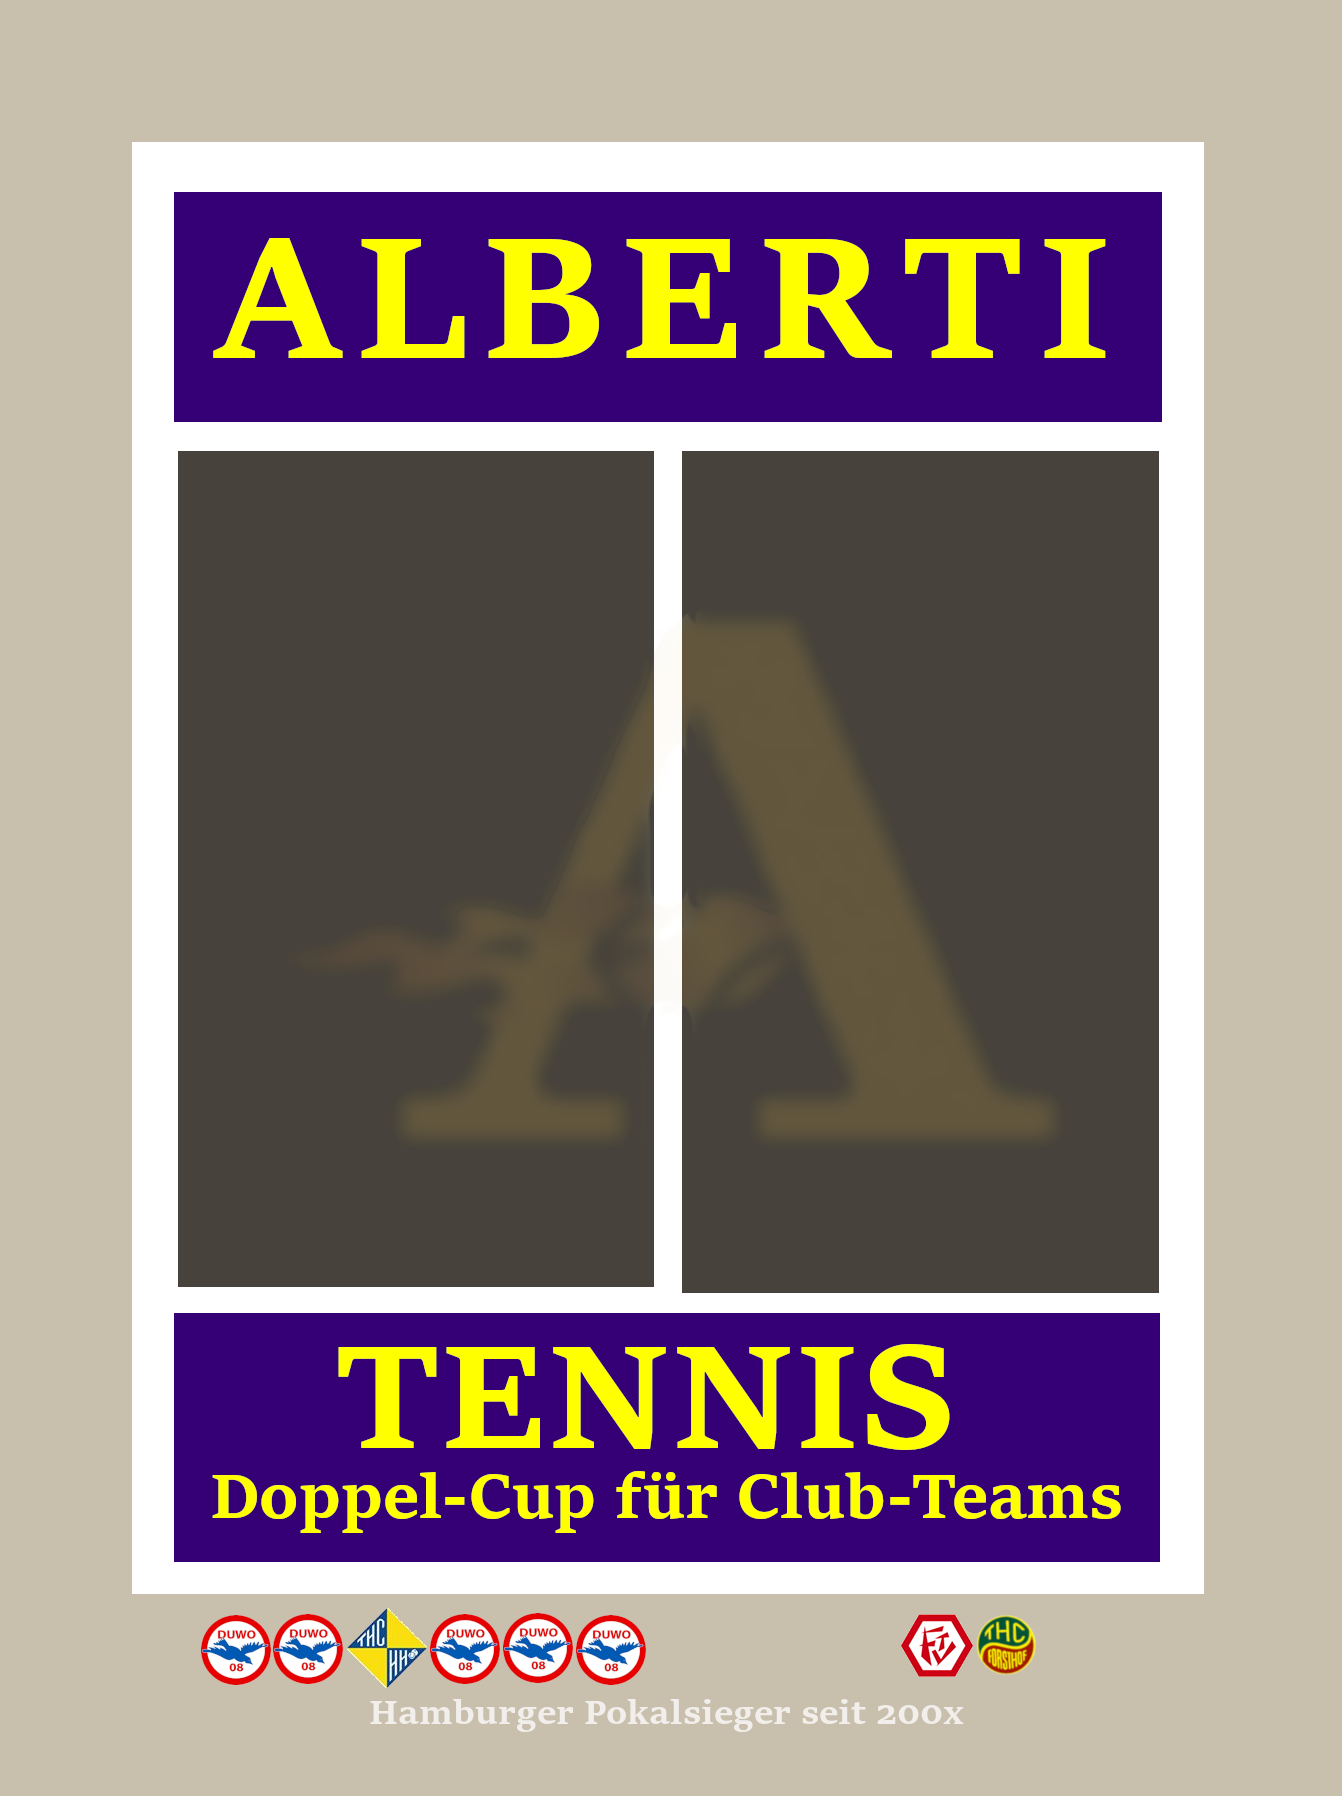 Alberti Cup in Hamburg